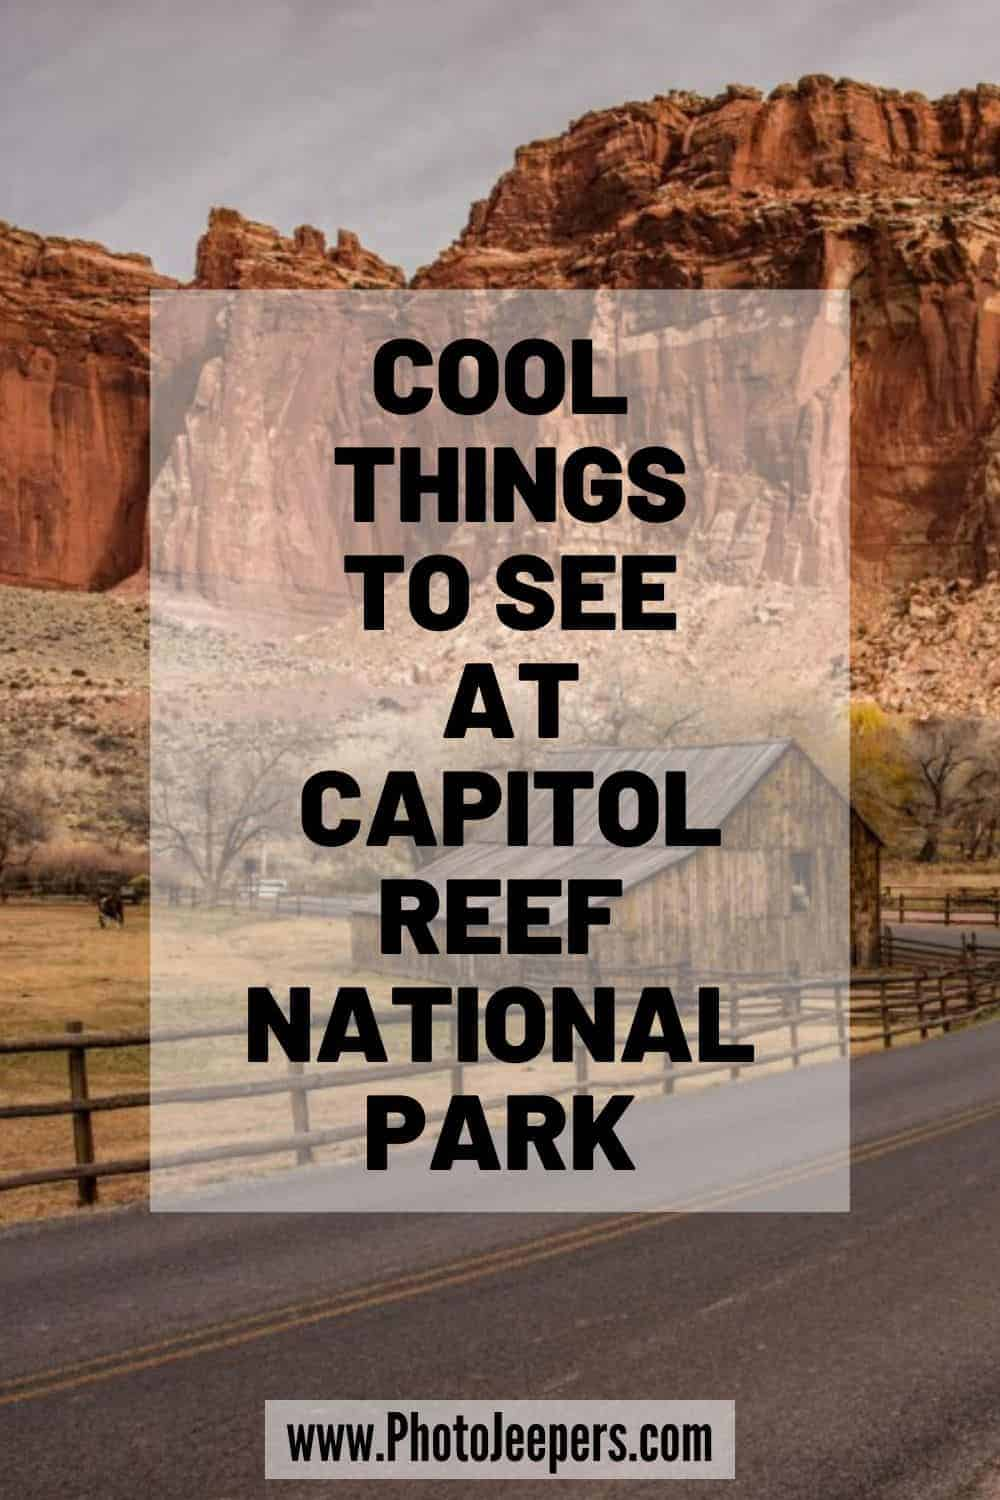 Use this guide to explore Capitol Reef:  Capitol Reef Hiking Gear | Capitol Reef Hiking Tips | Favorite Capitol Reef Hikes | Fun Capitol Reef Activities #nationalparks #capitolreef #utah #photojeepers